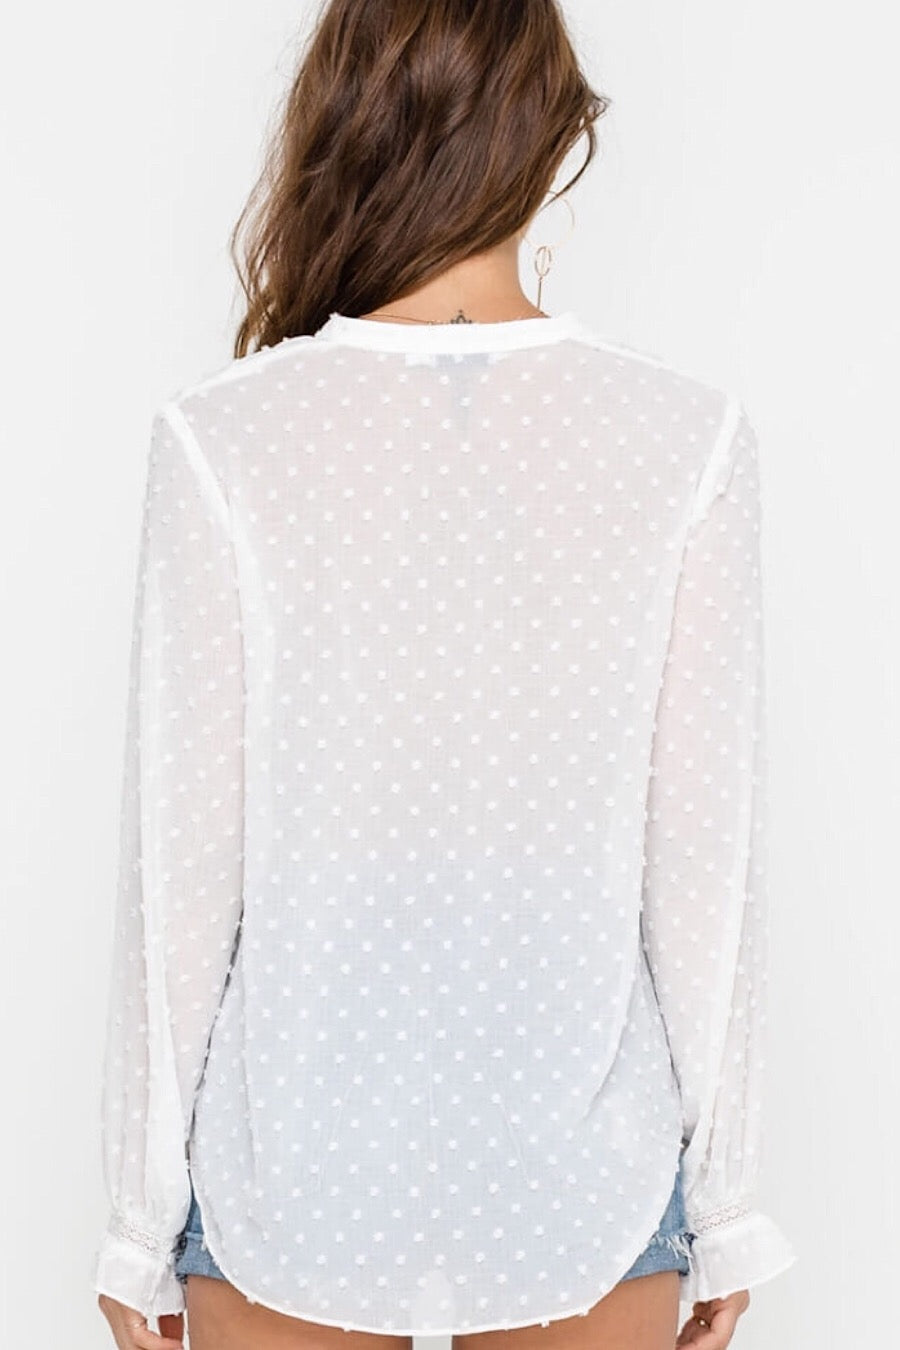 Dotted Lace Blouse in Creme